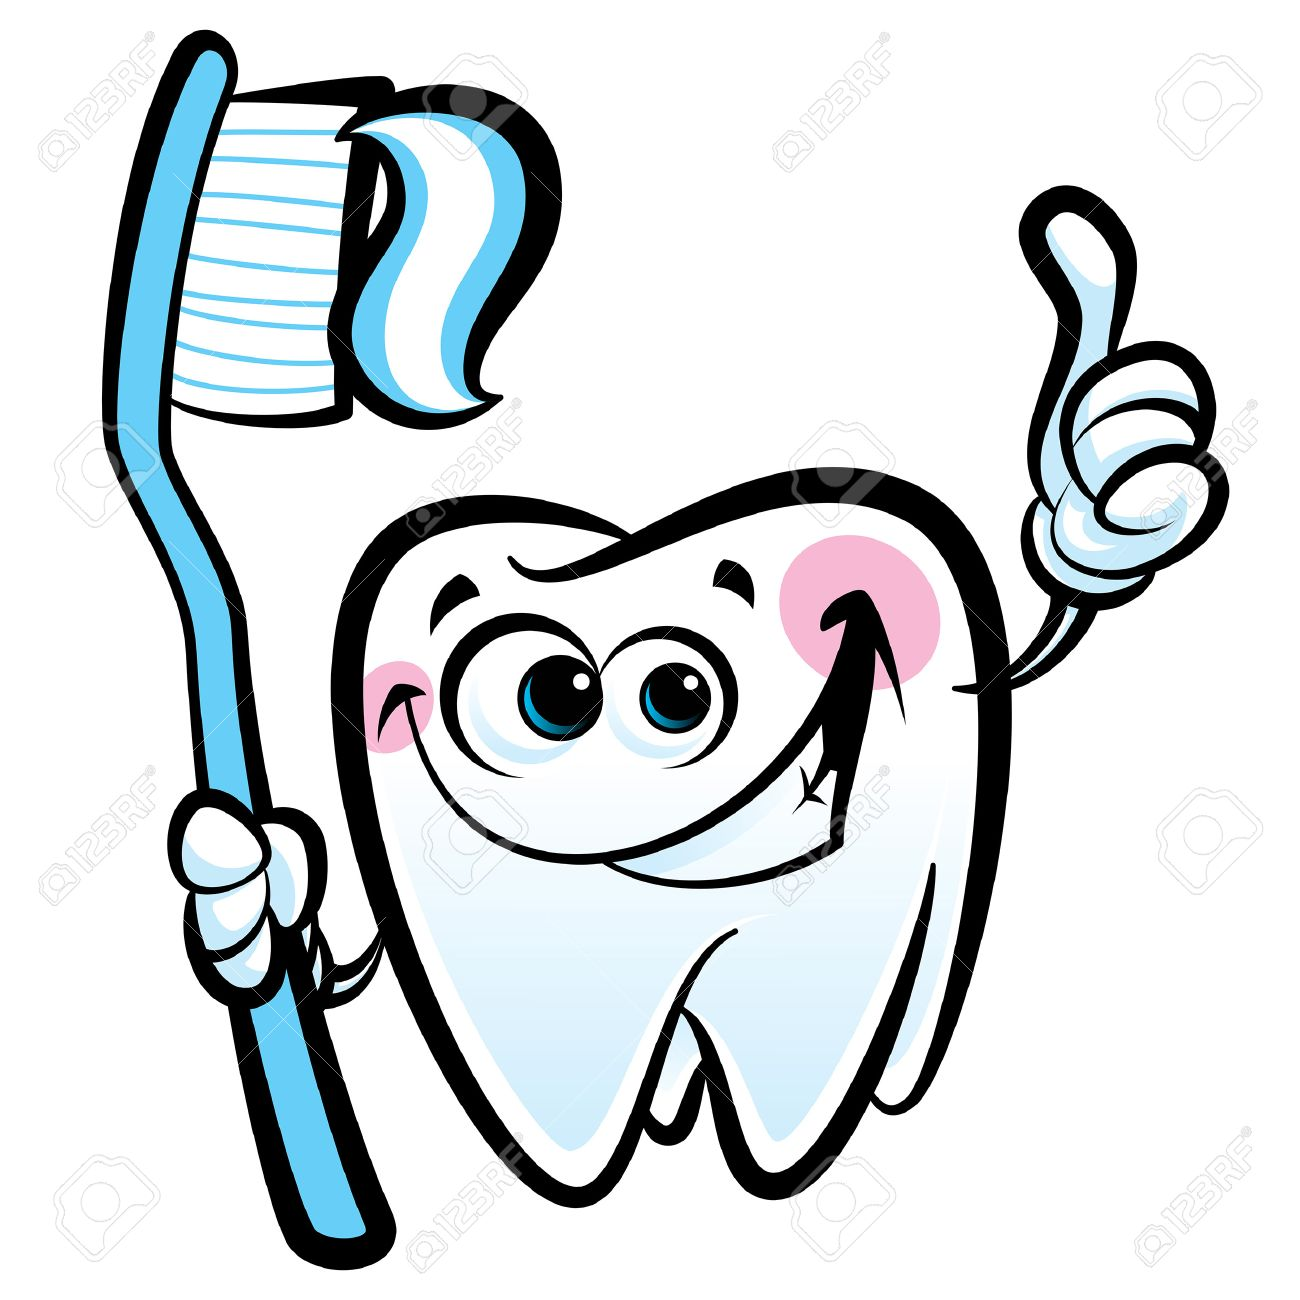 Cute Toothbrush Drawing Healthy cute cartoon tooth